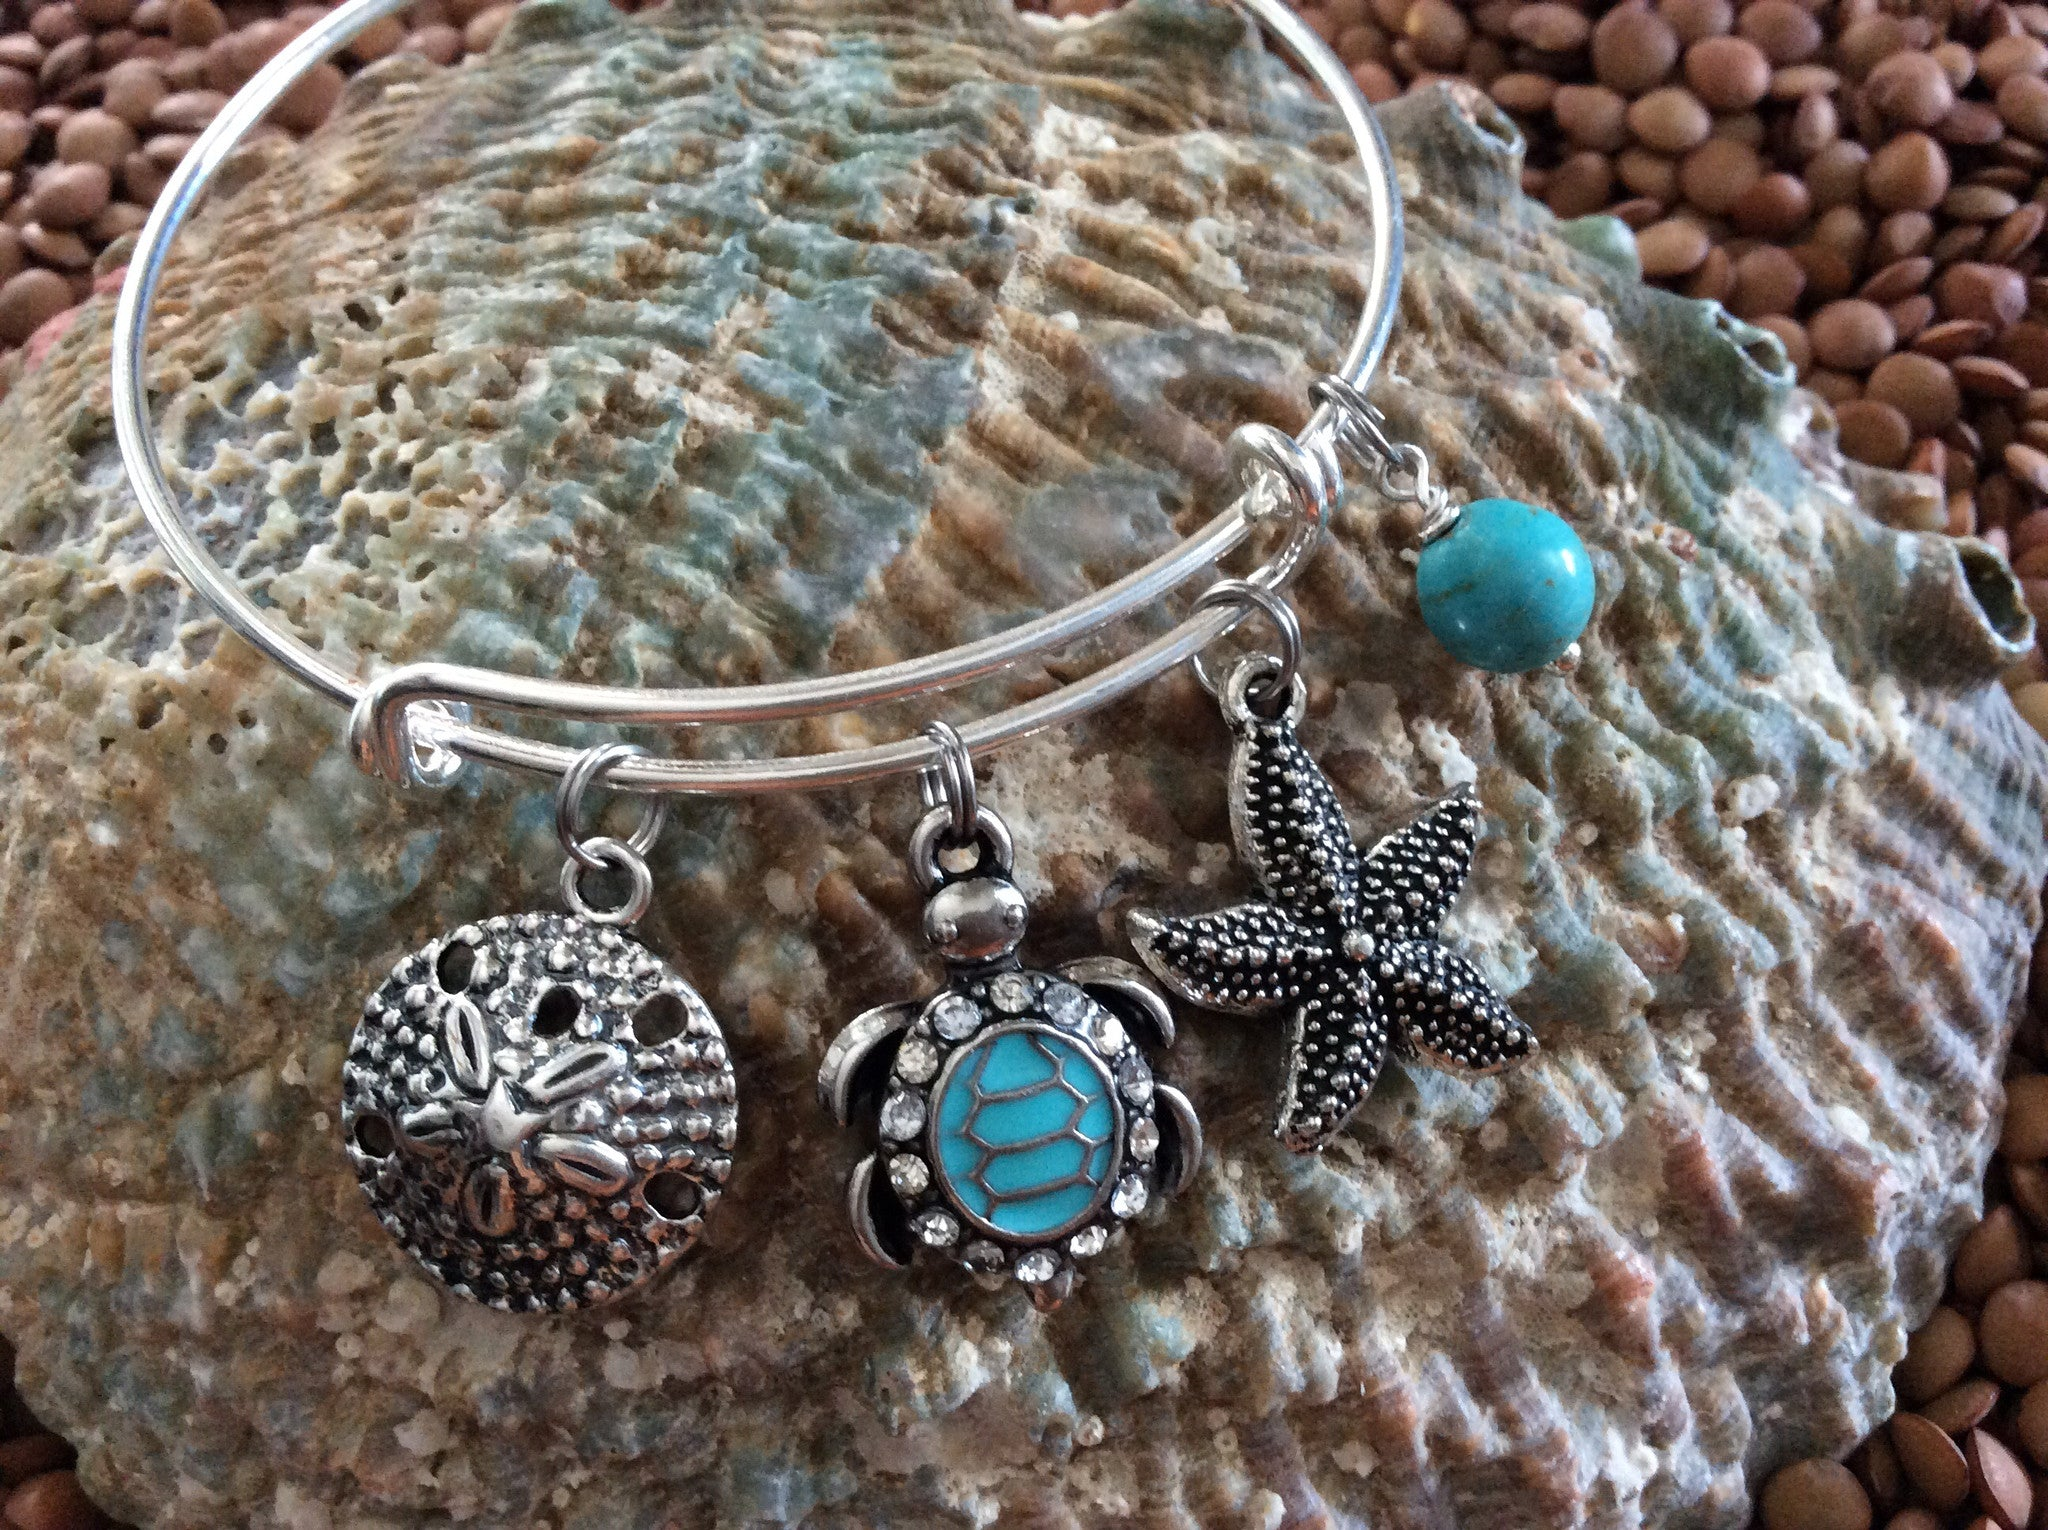 bbeb1dee4e6 ... Jewelry · Crystal Turquoise Silver Turtle Starfish Sand Dollar  Expandable Nautical Bracelet Silver Adjustable Wire Bangle Gift Ocean ...